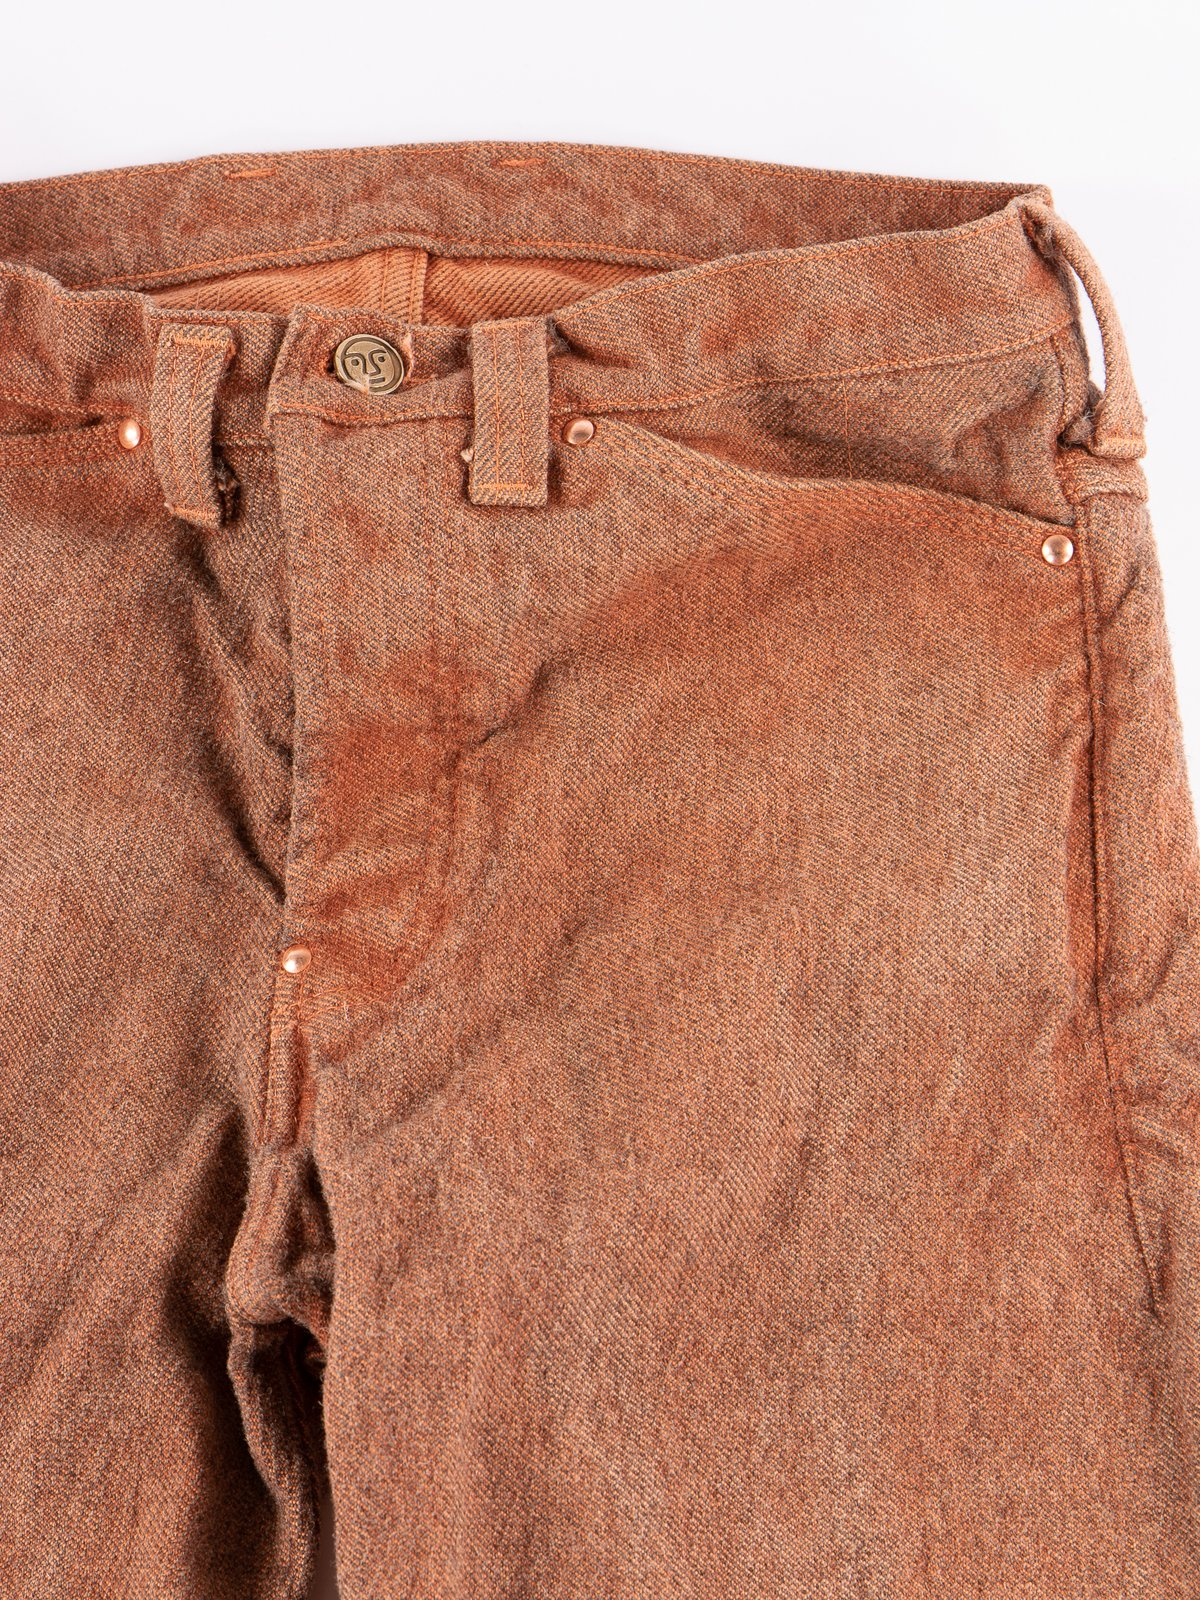 Red Ochre Dye Tapered Jean - Image 3